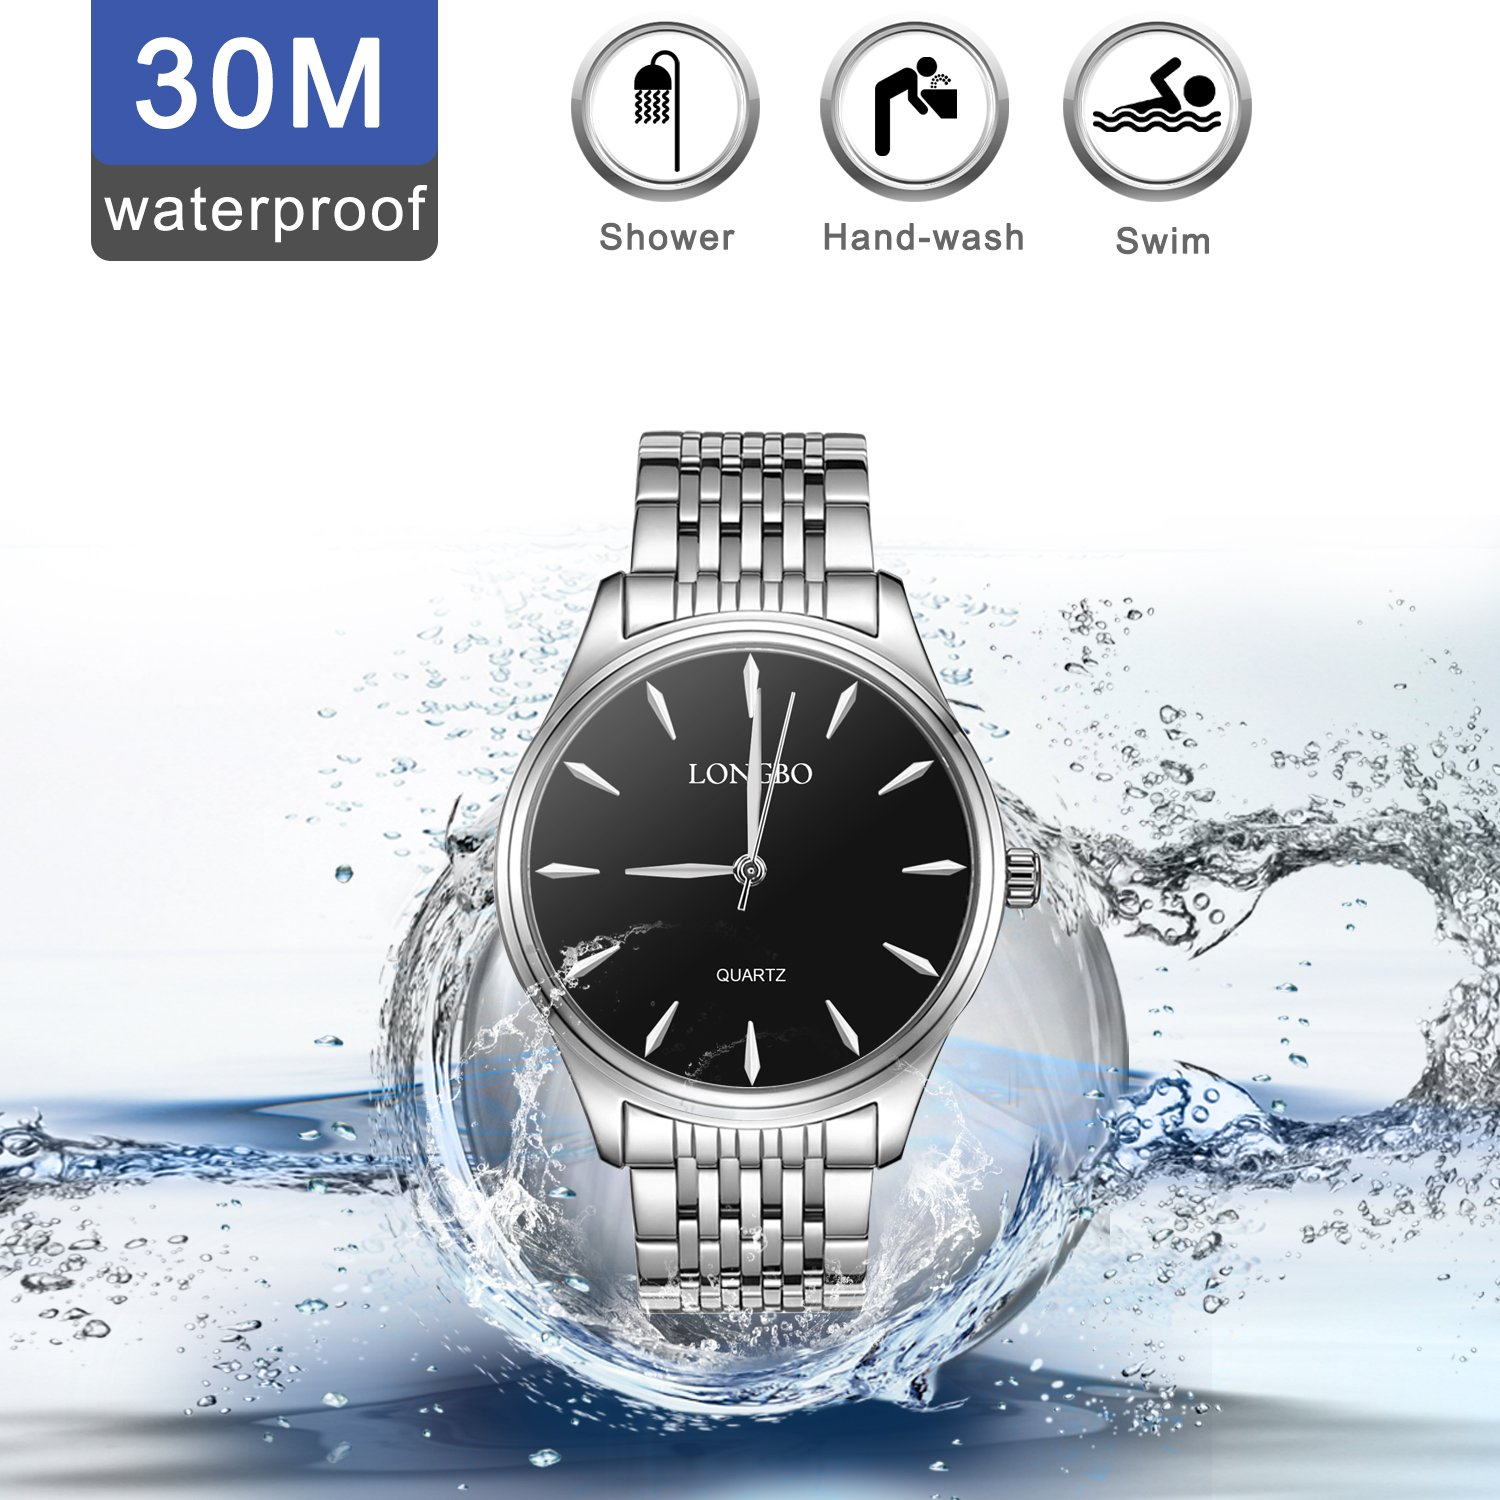 Women Watches,LONGBO Couple Stainless Steel Band Watch Dress Business Wrist Watches Fashion Casual and Waterproof Watches for ladies(Women)